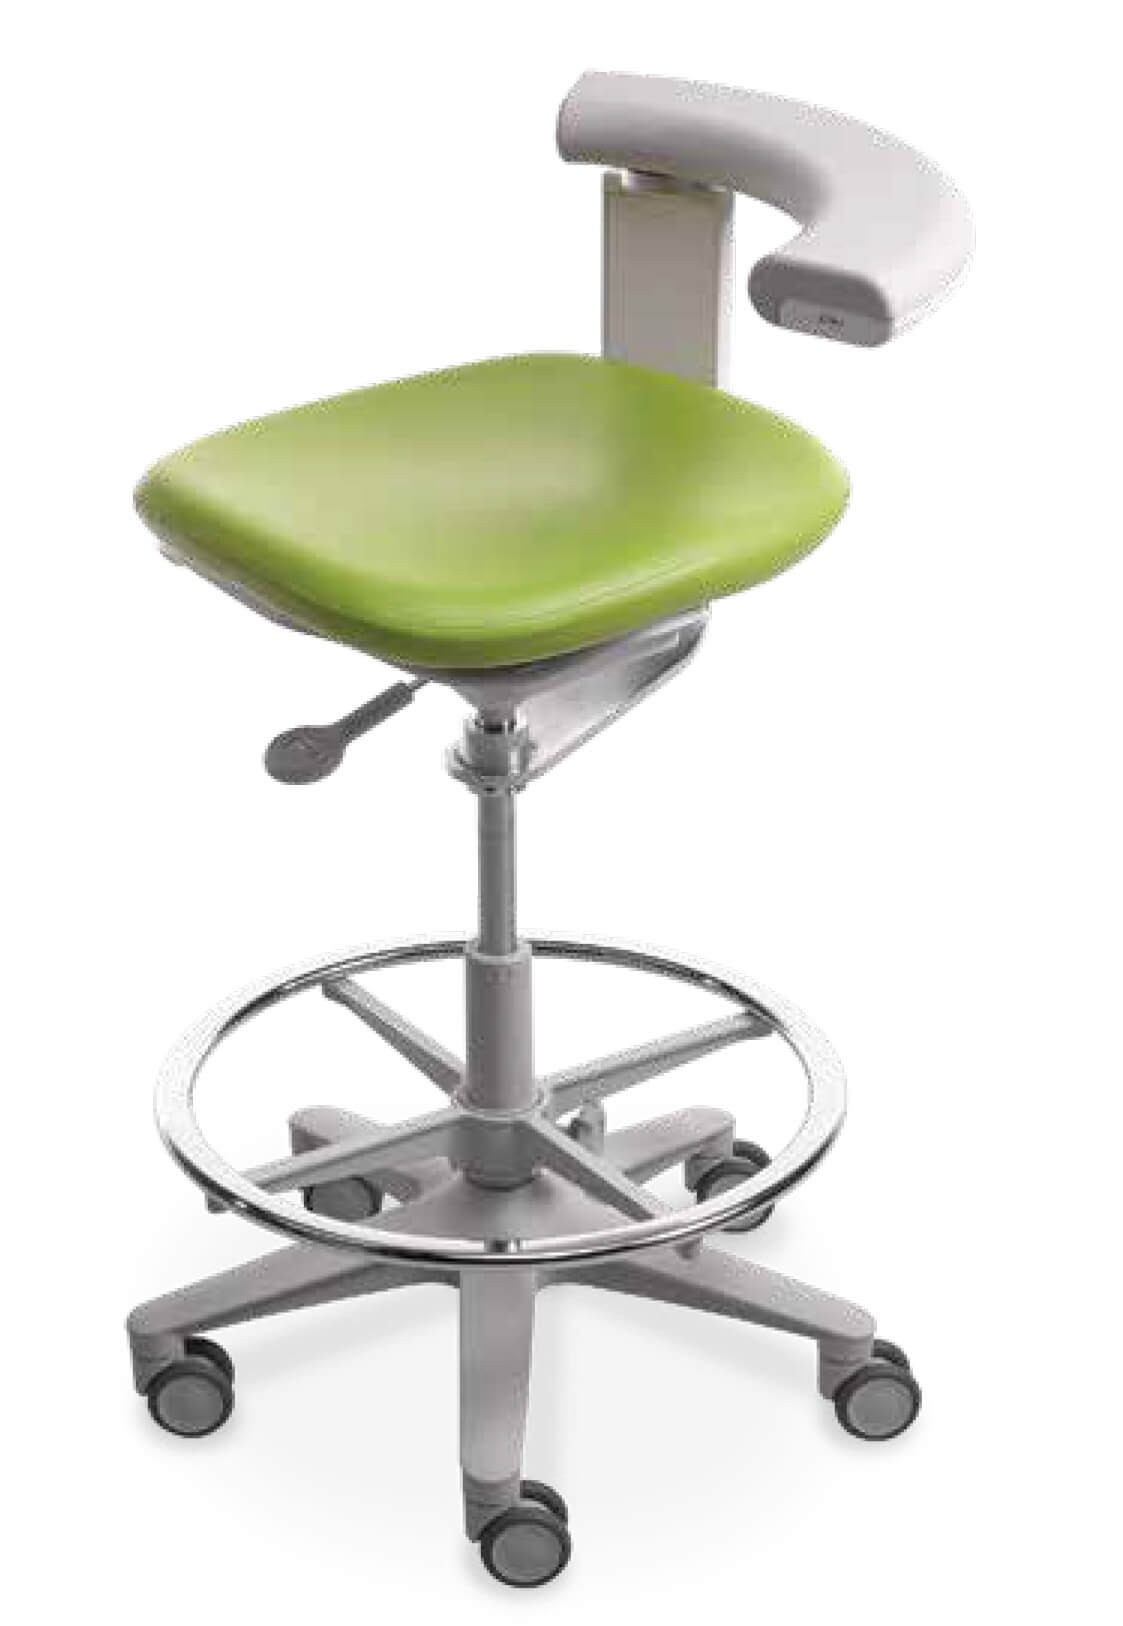 Image of an A-dec 522 Assistant's Stool